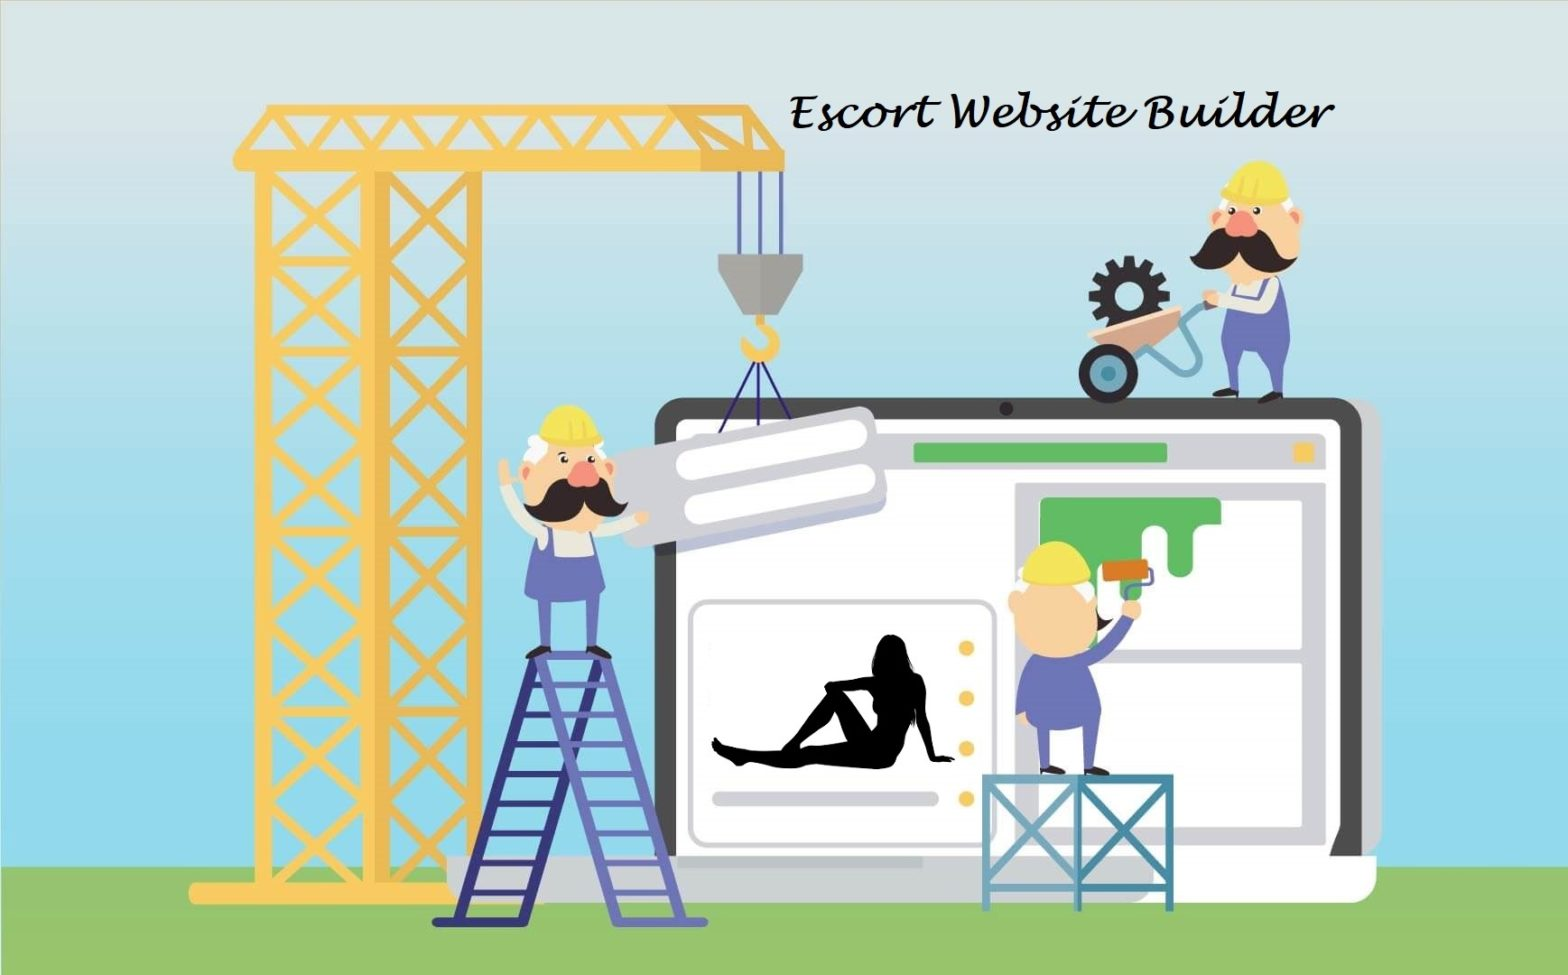 Escort website builder